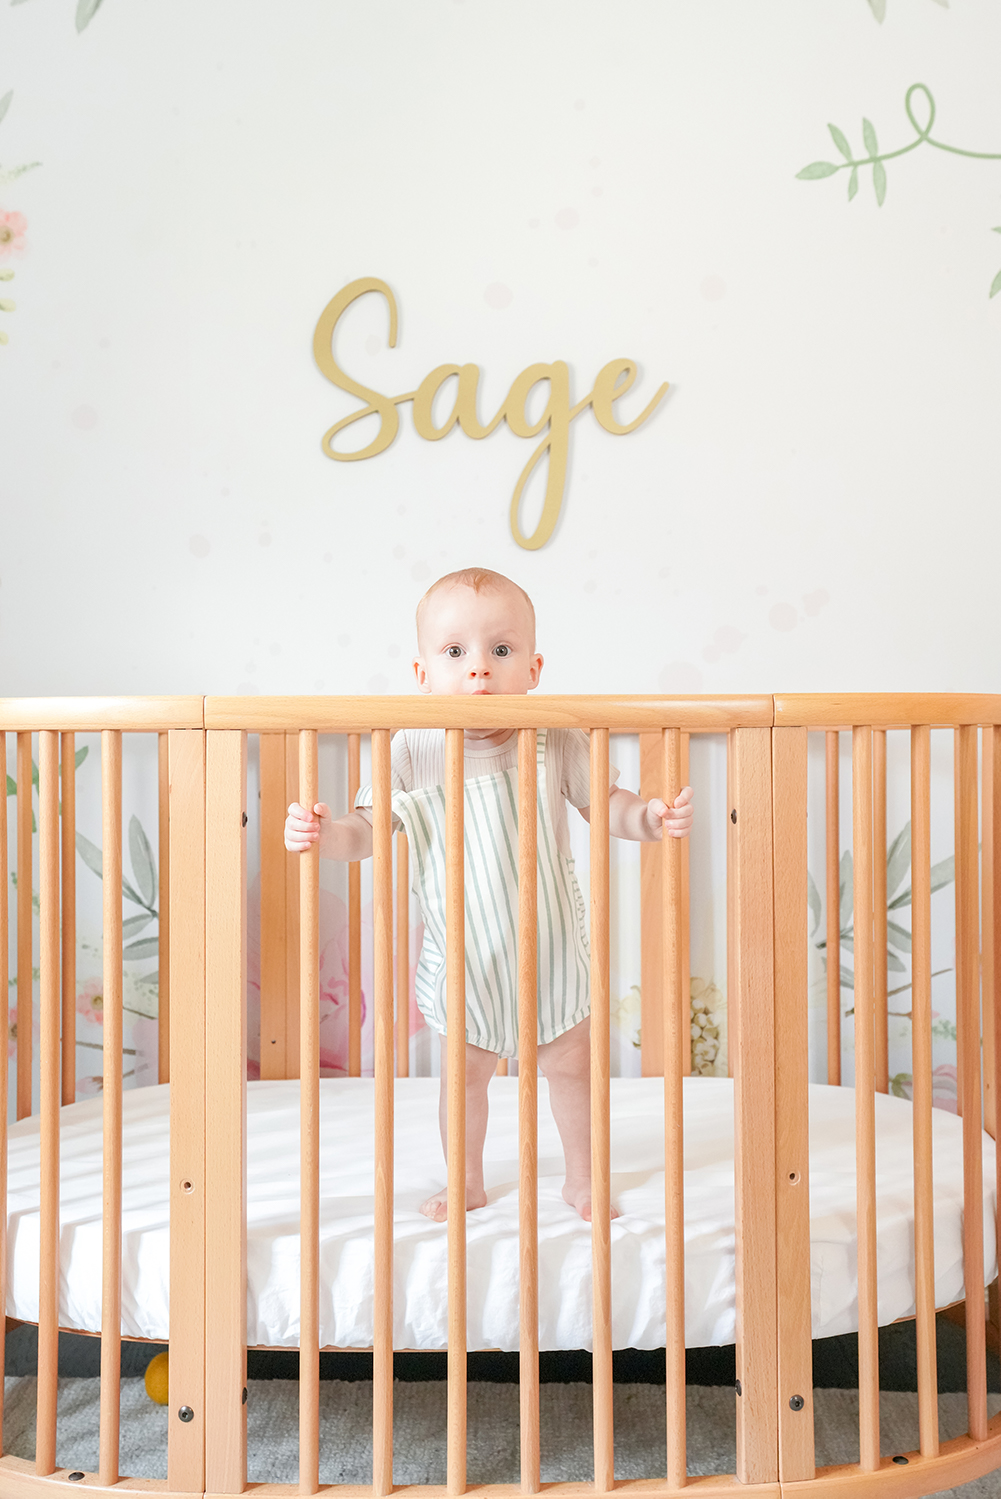 a 9 month old baby stood in her crib